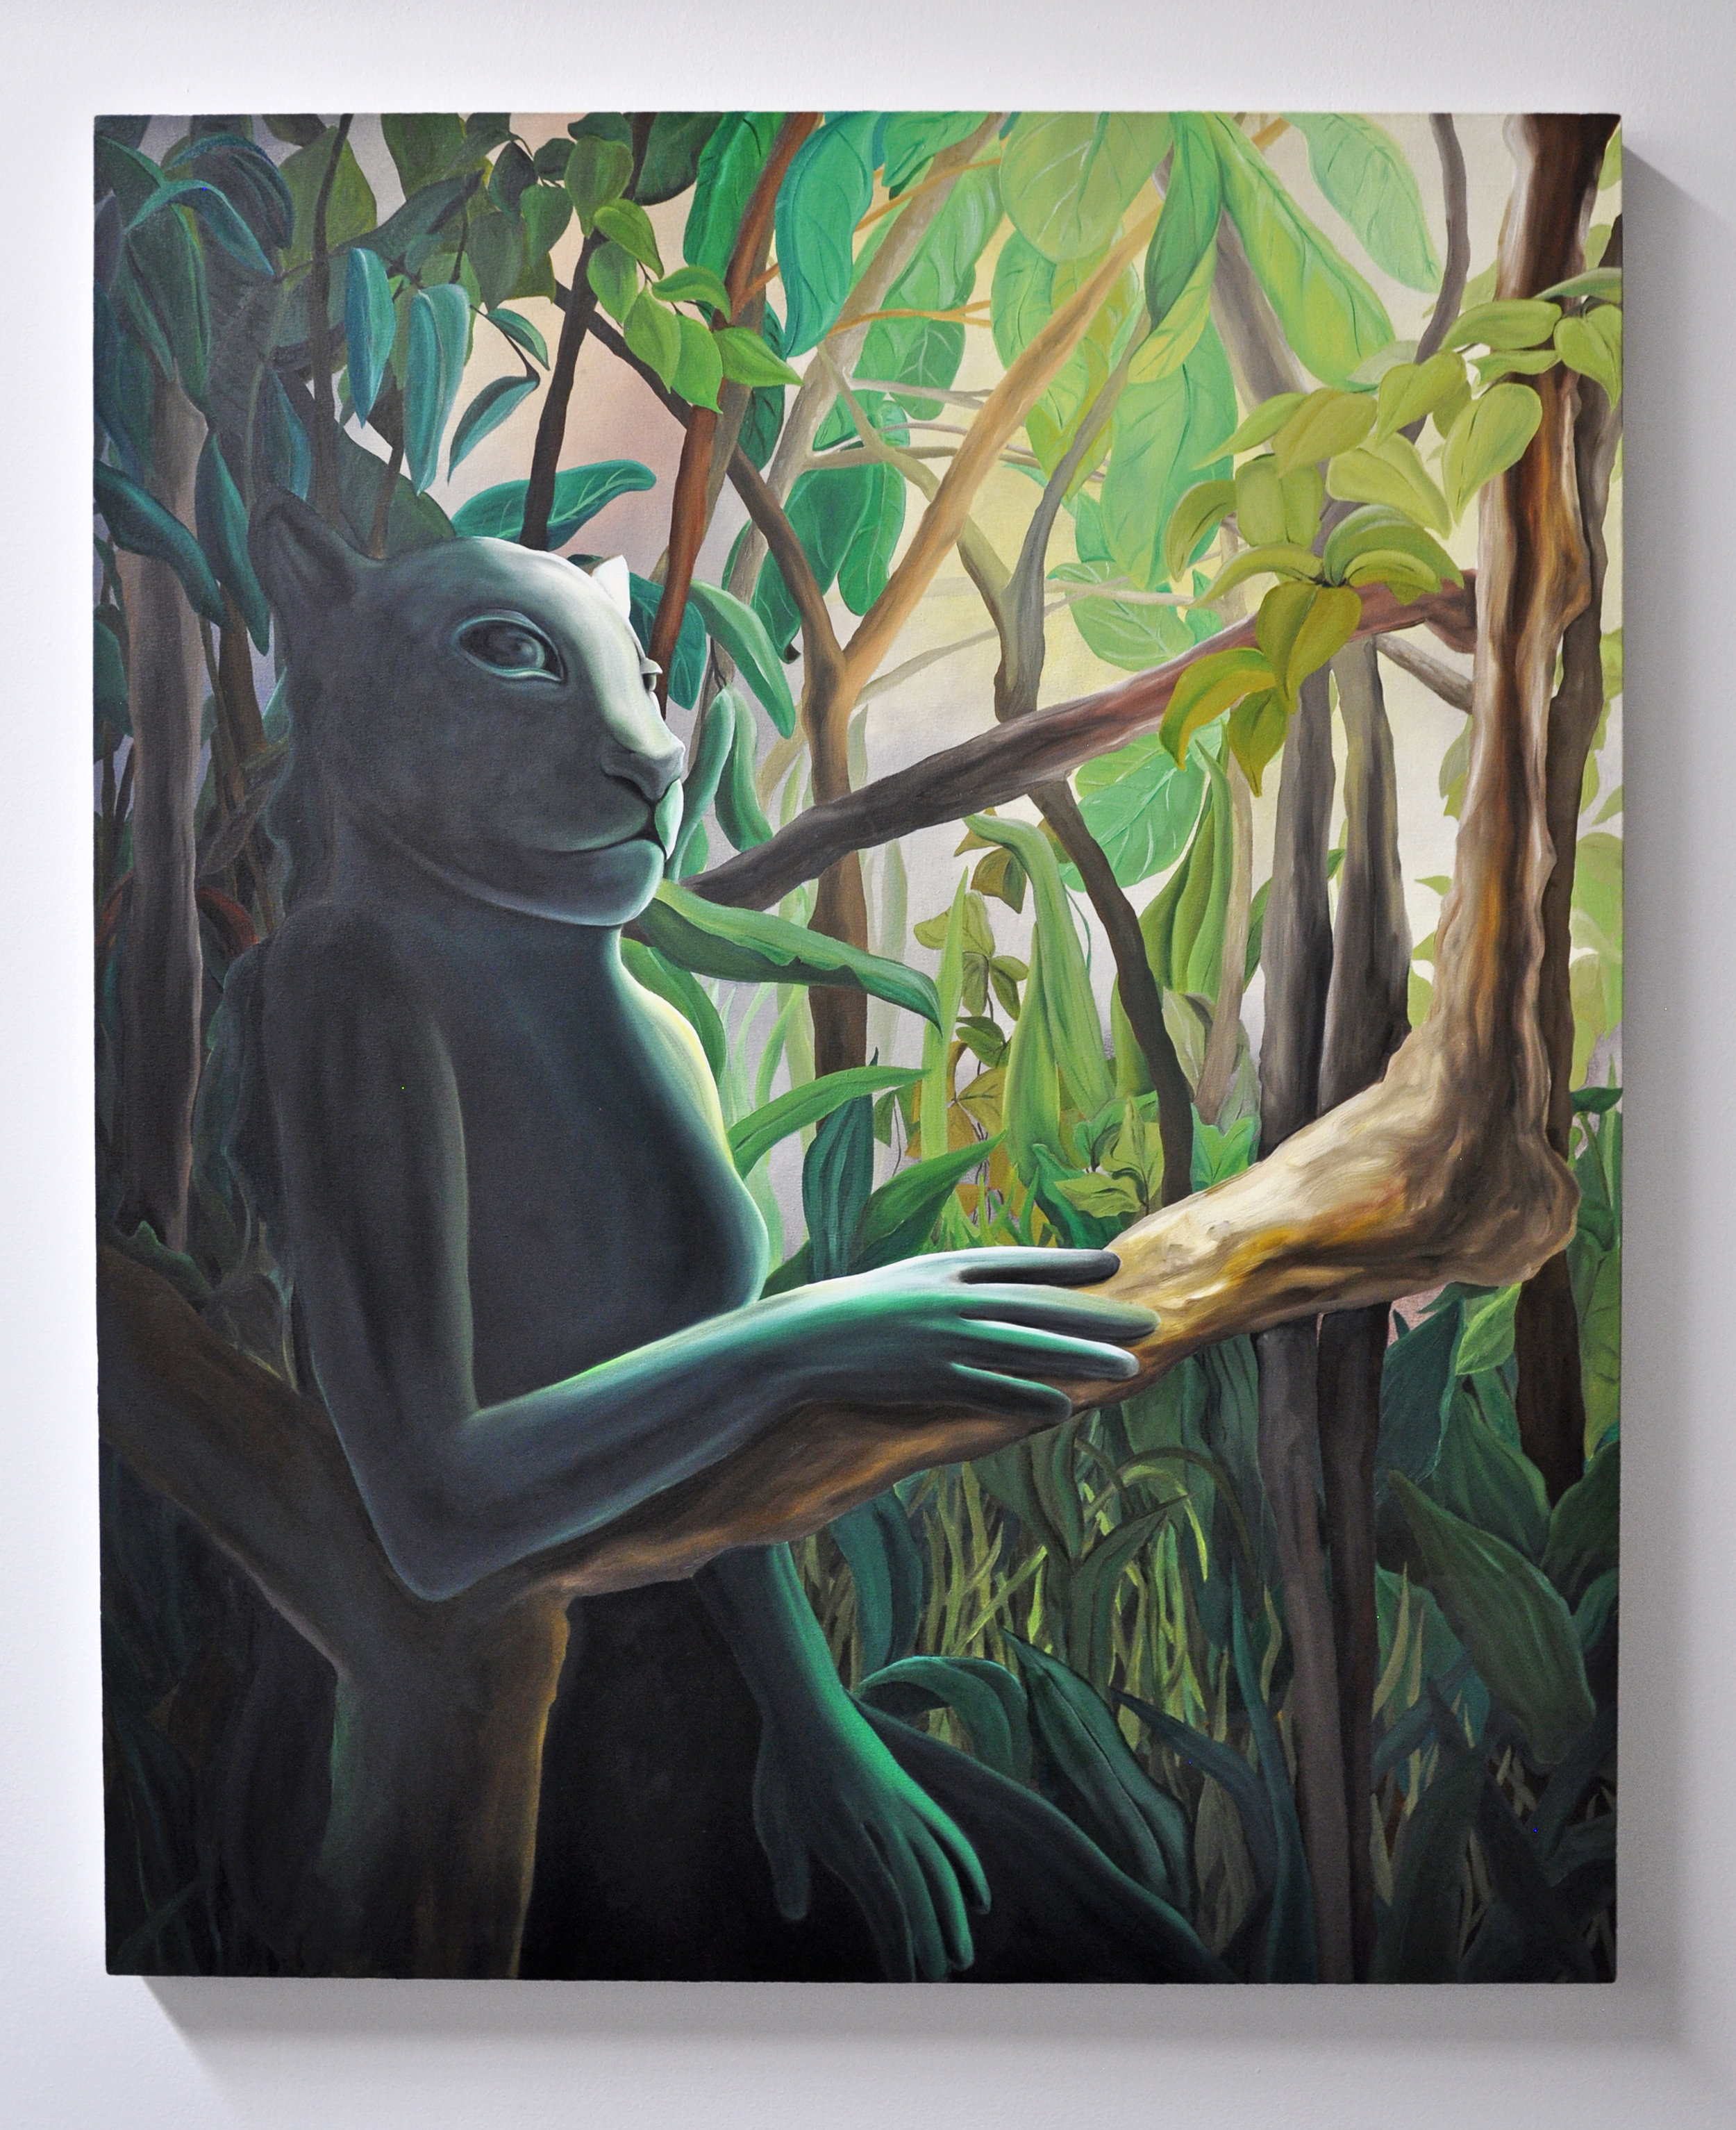 Courtney Johnson, Ficus, 2019, Oil on canvas, 42.5x52.5 in, $4,200